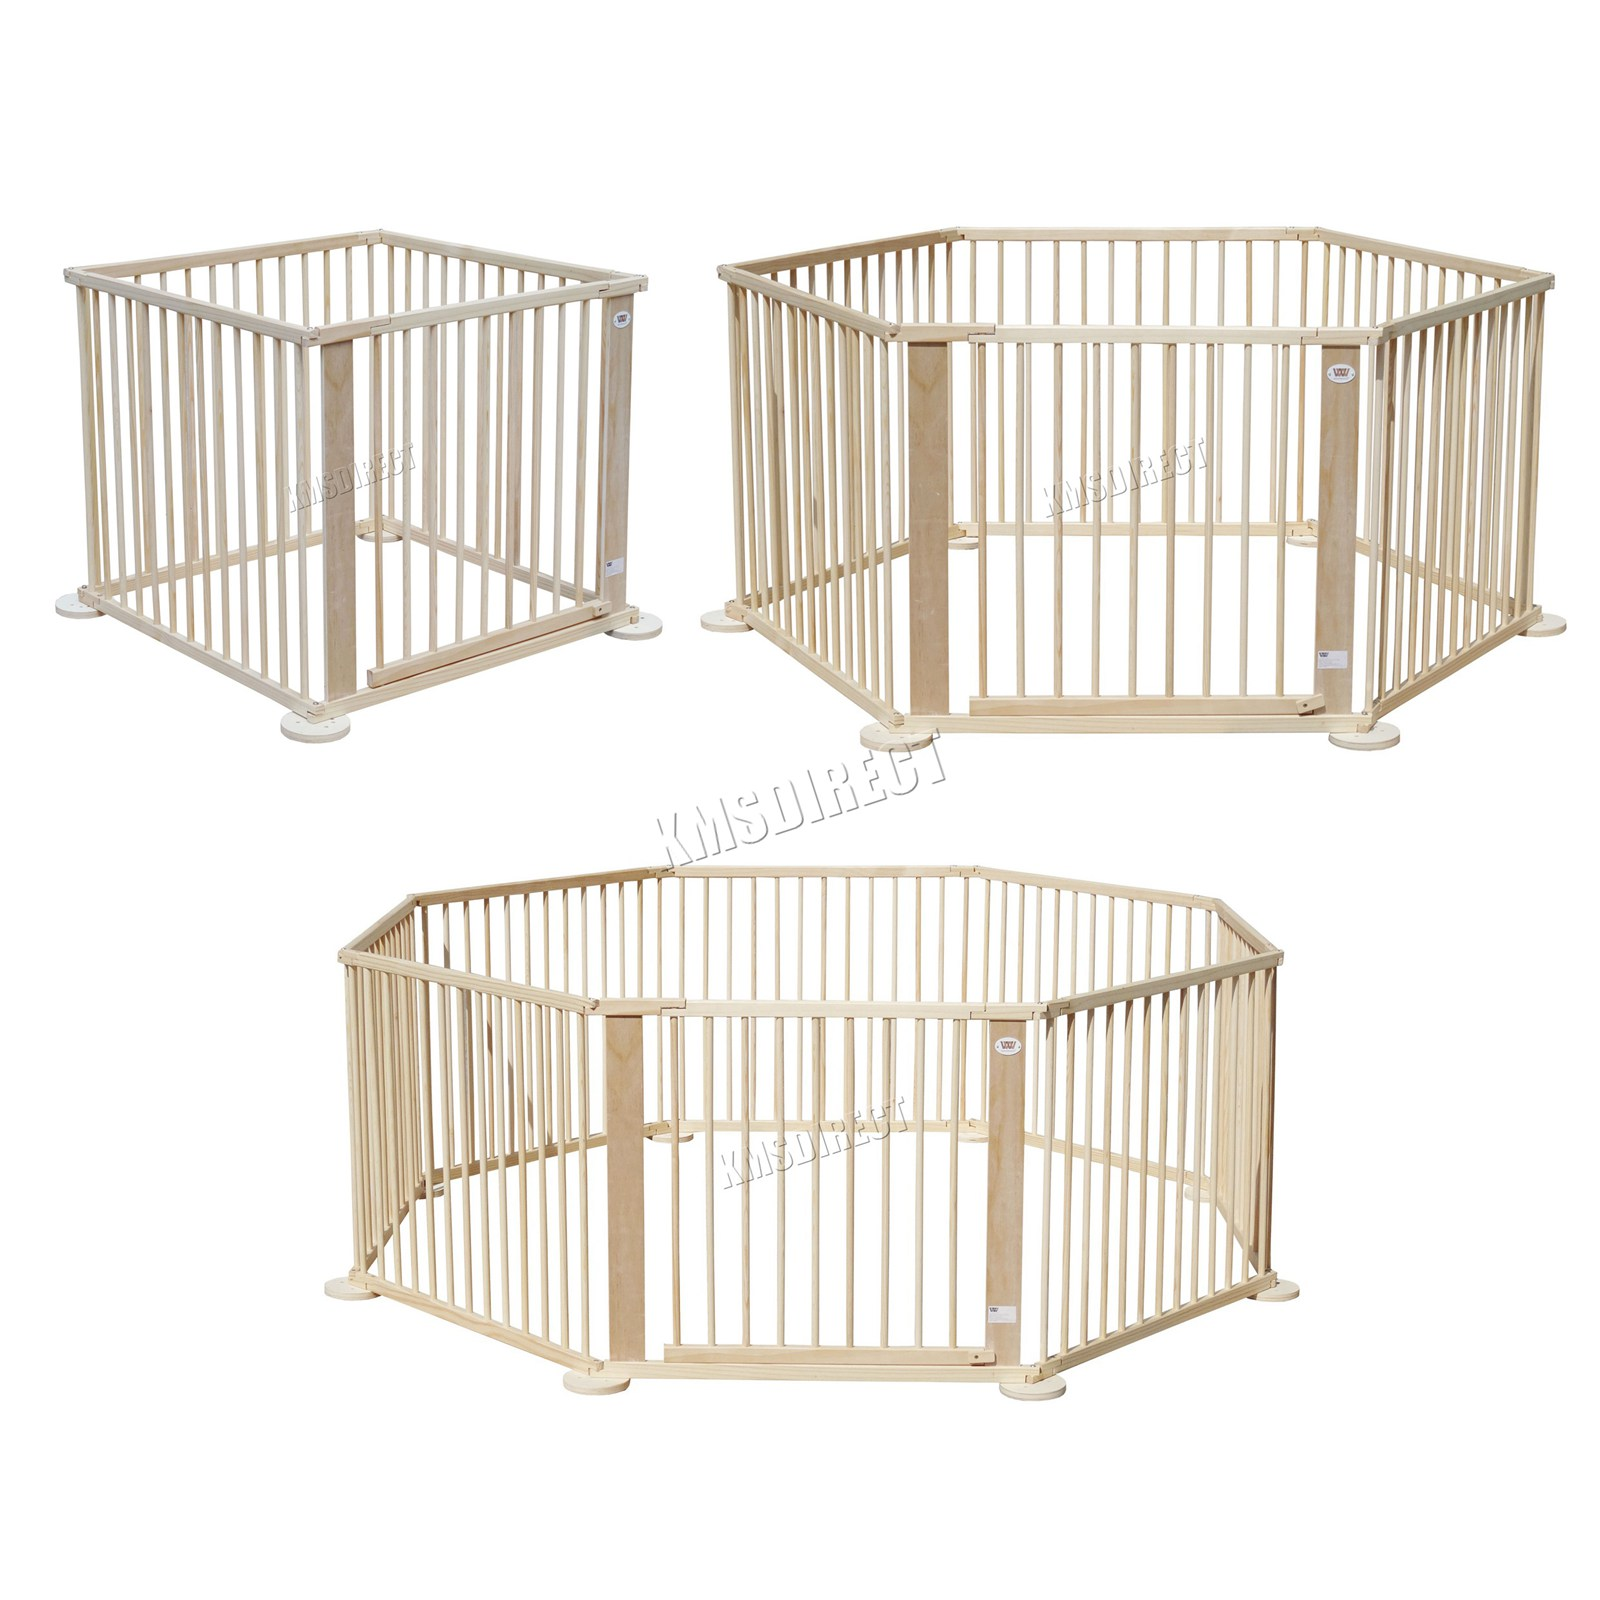 Baby Playpen How Details About Westwood Baby Playpen Wooden Folding Play Area For Kids Heavy Duty